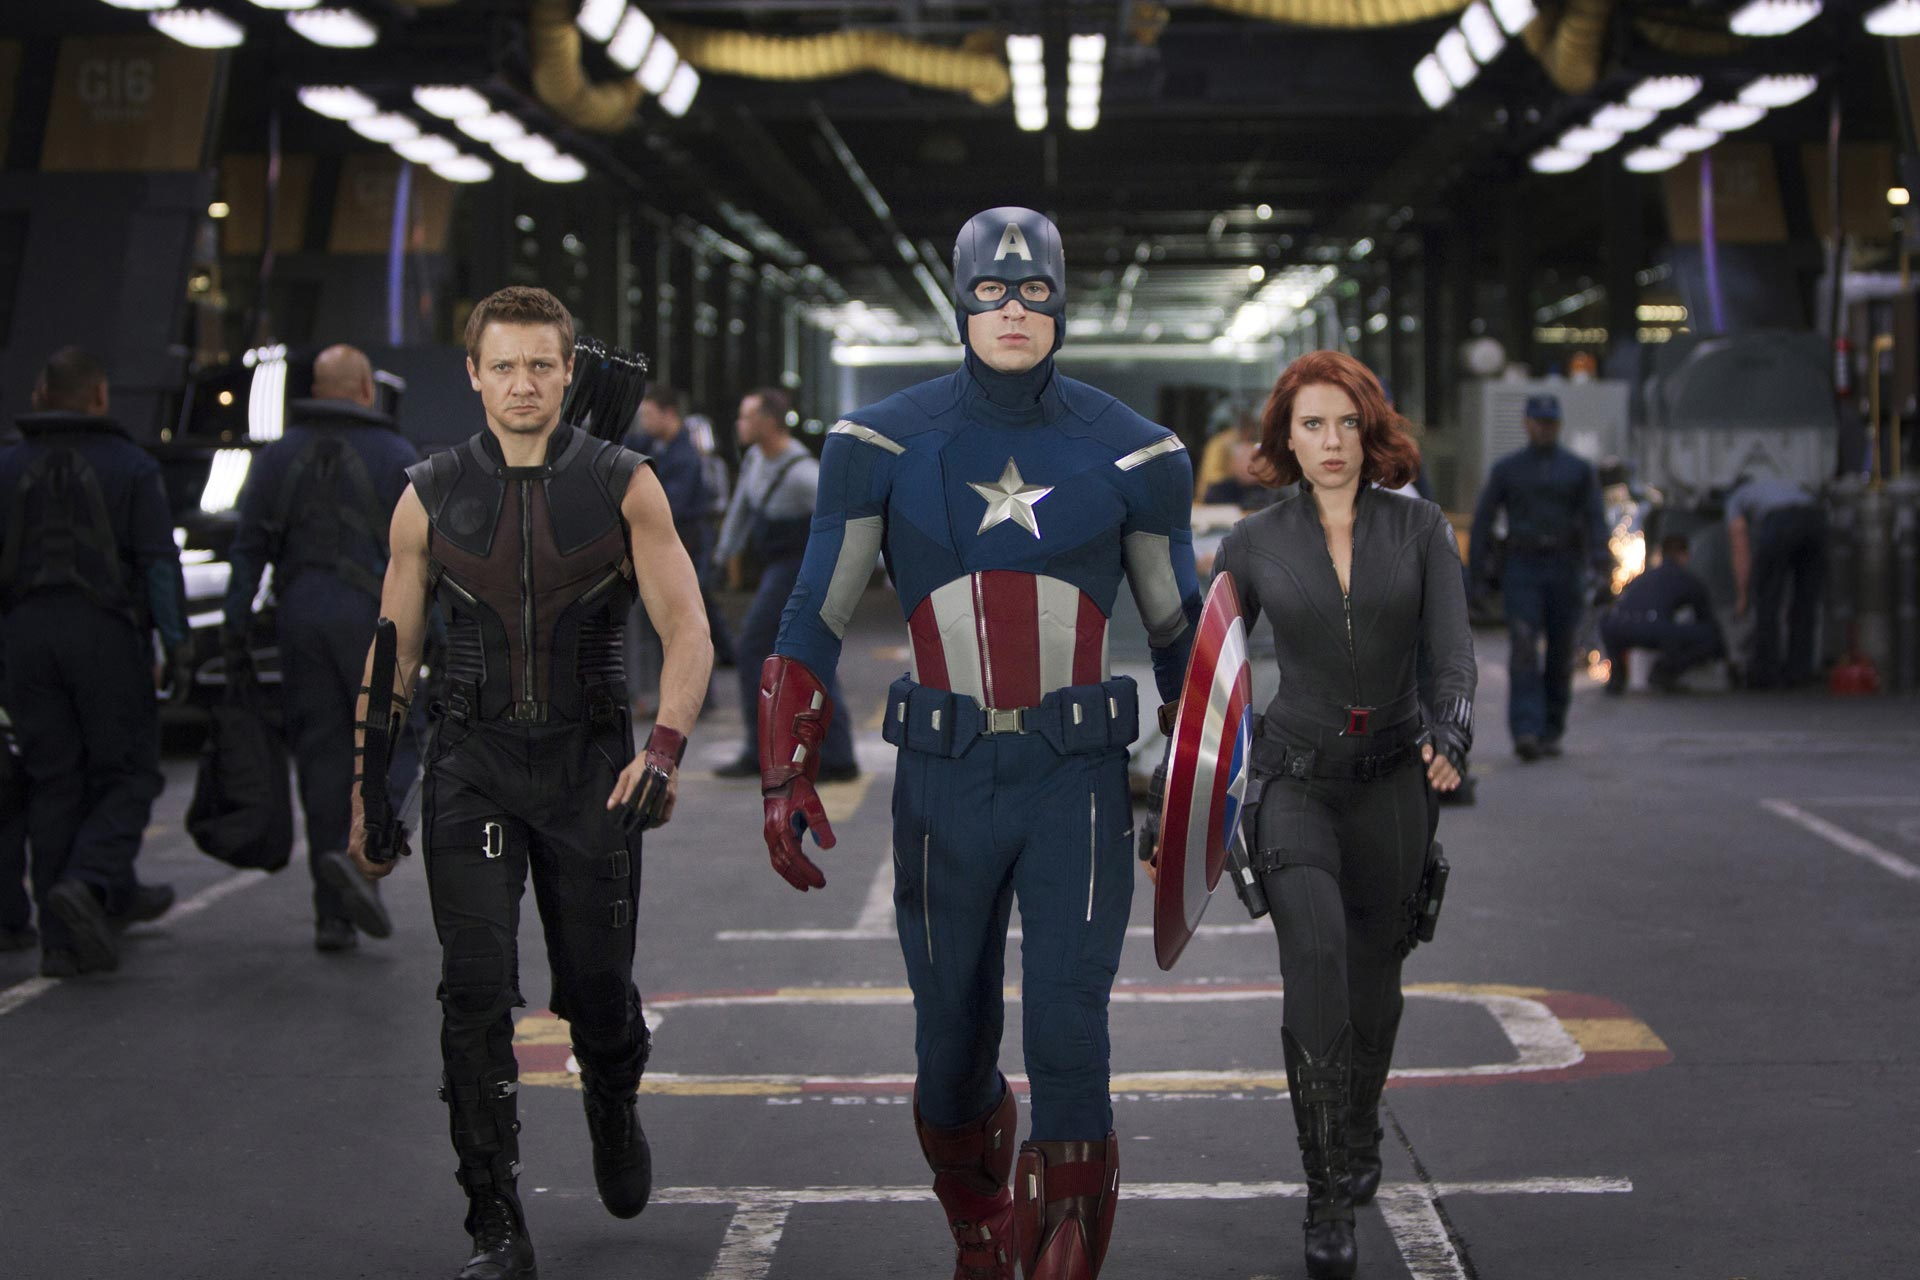 Hawkeye, Cap & Black Widow